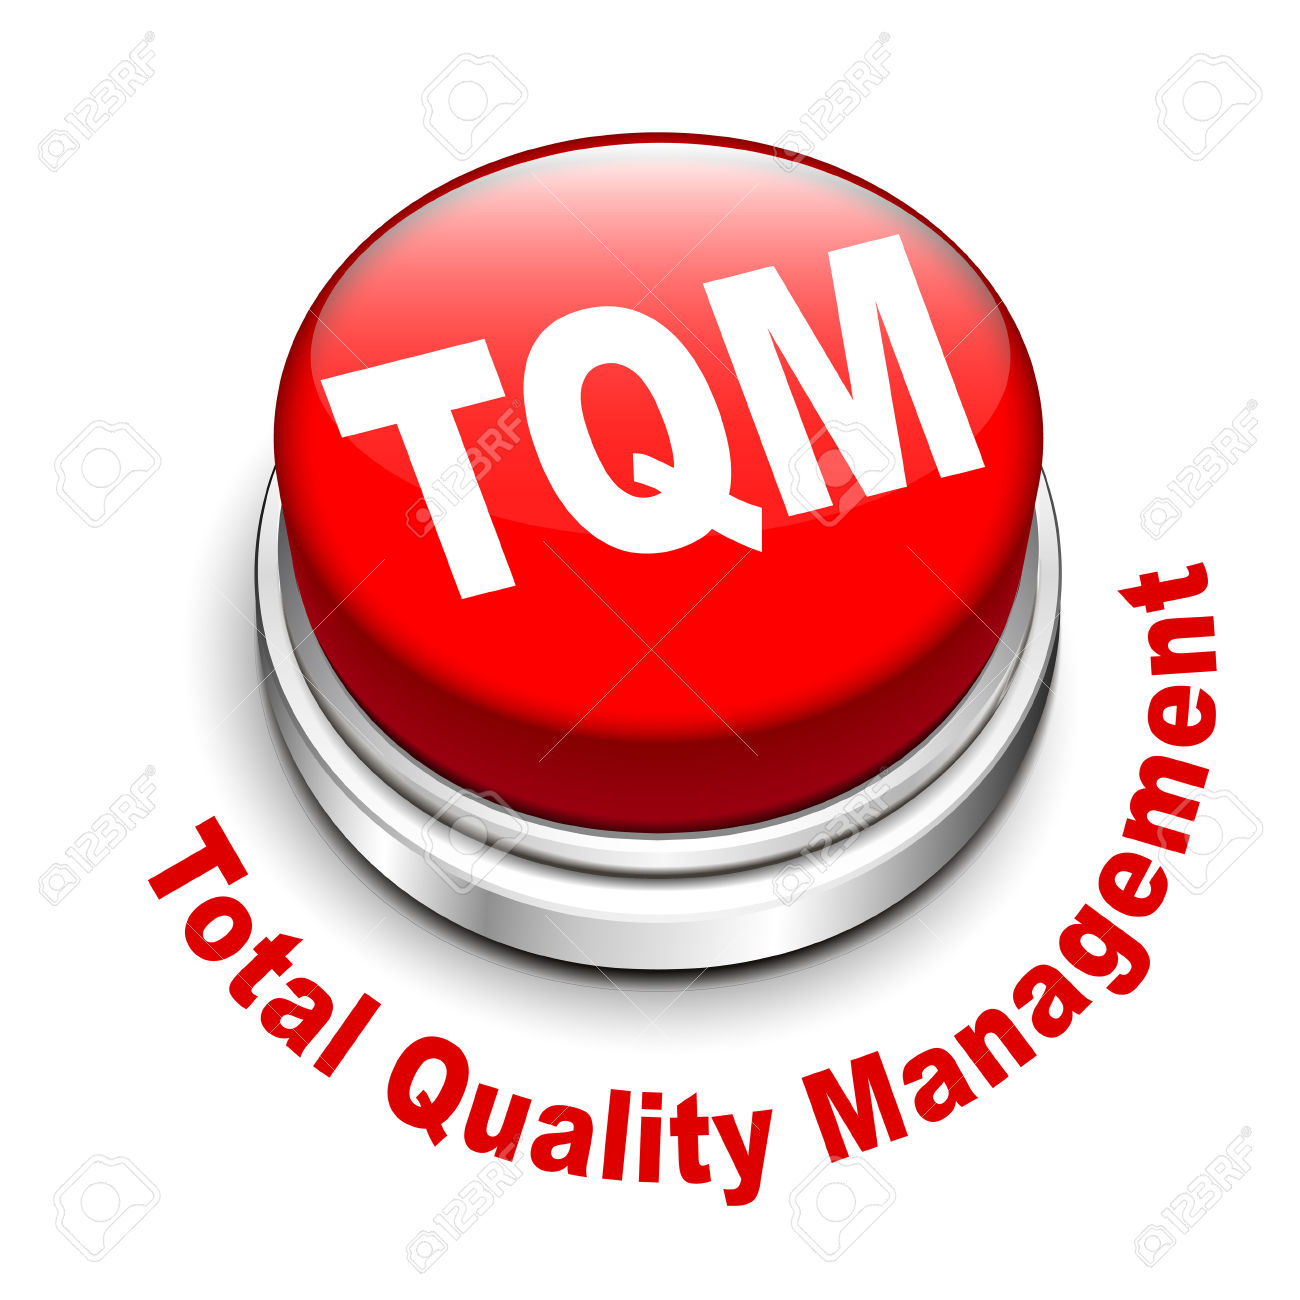 Total quality management clipart.